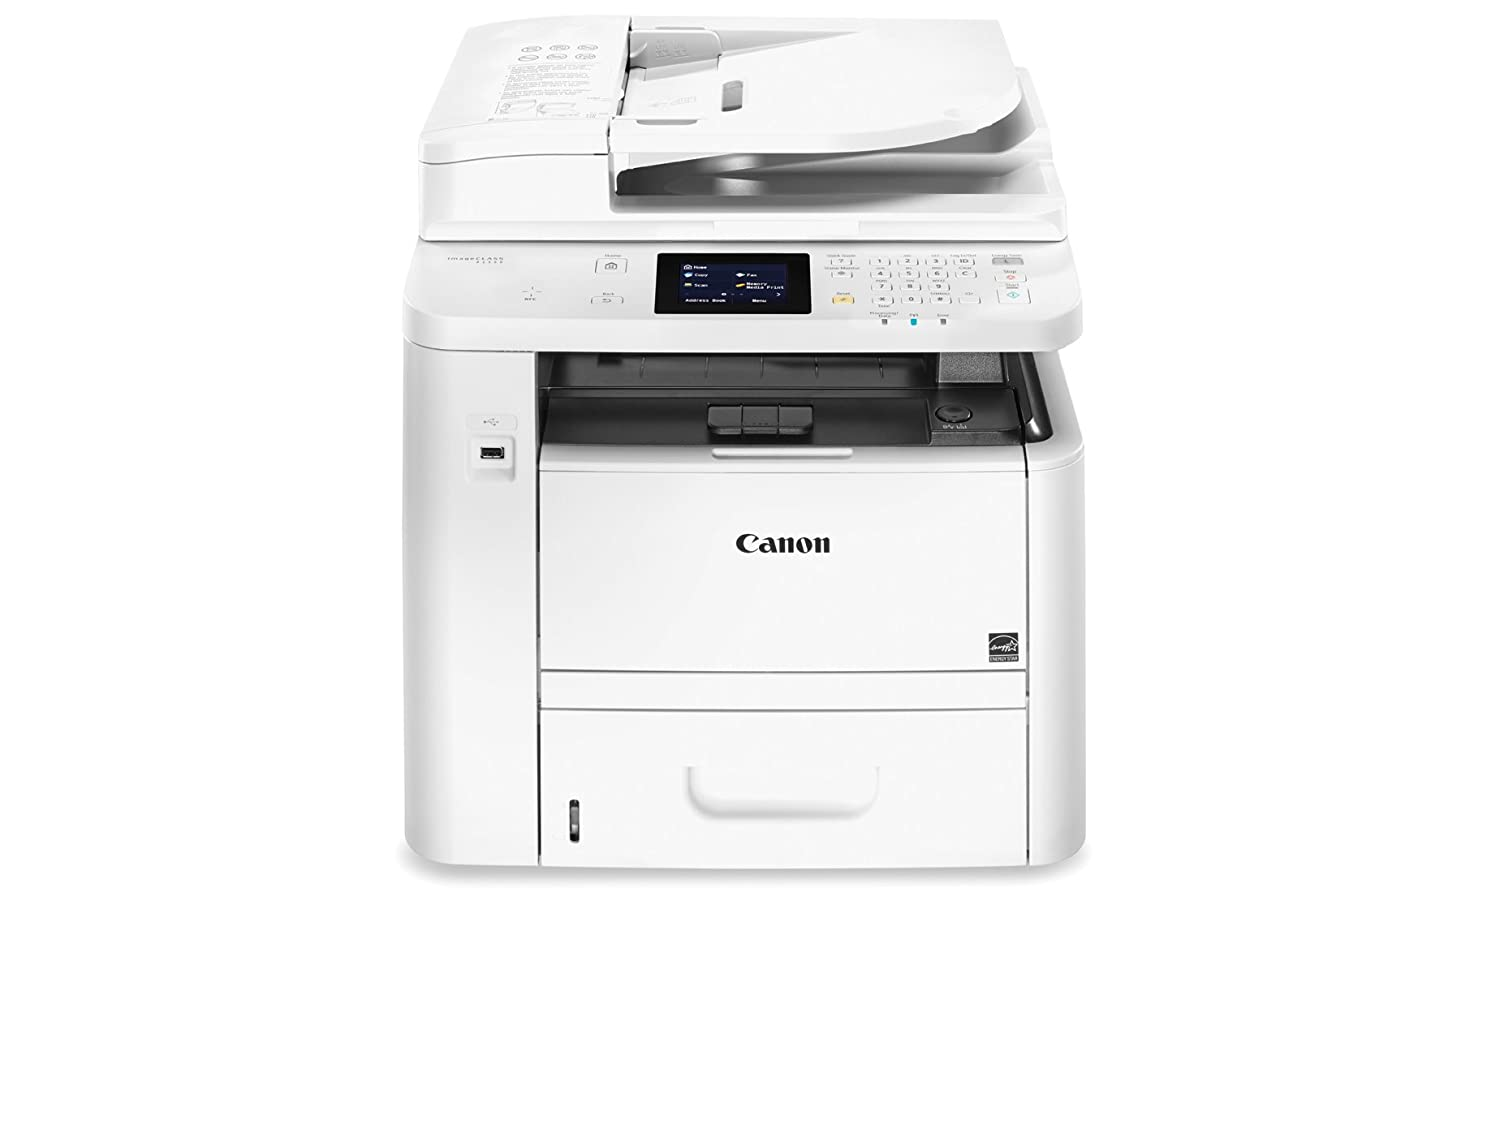 Amazon.com: Canon Lasers Imageclass D1550 Wireless Monochrome ...